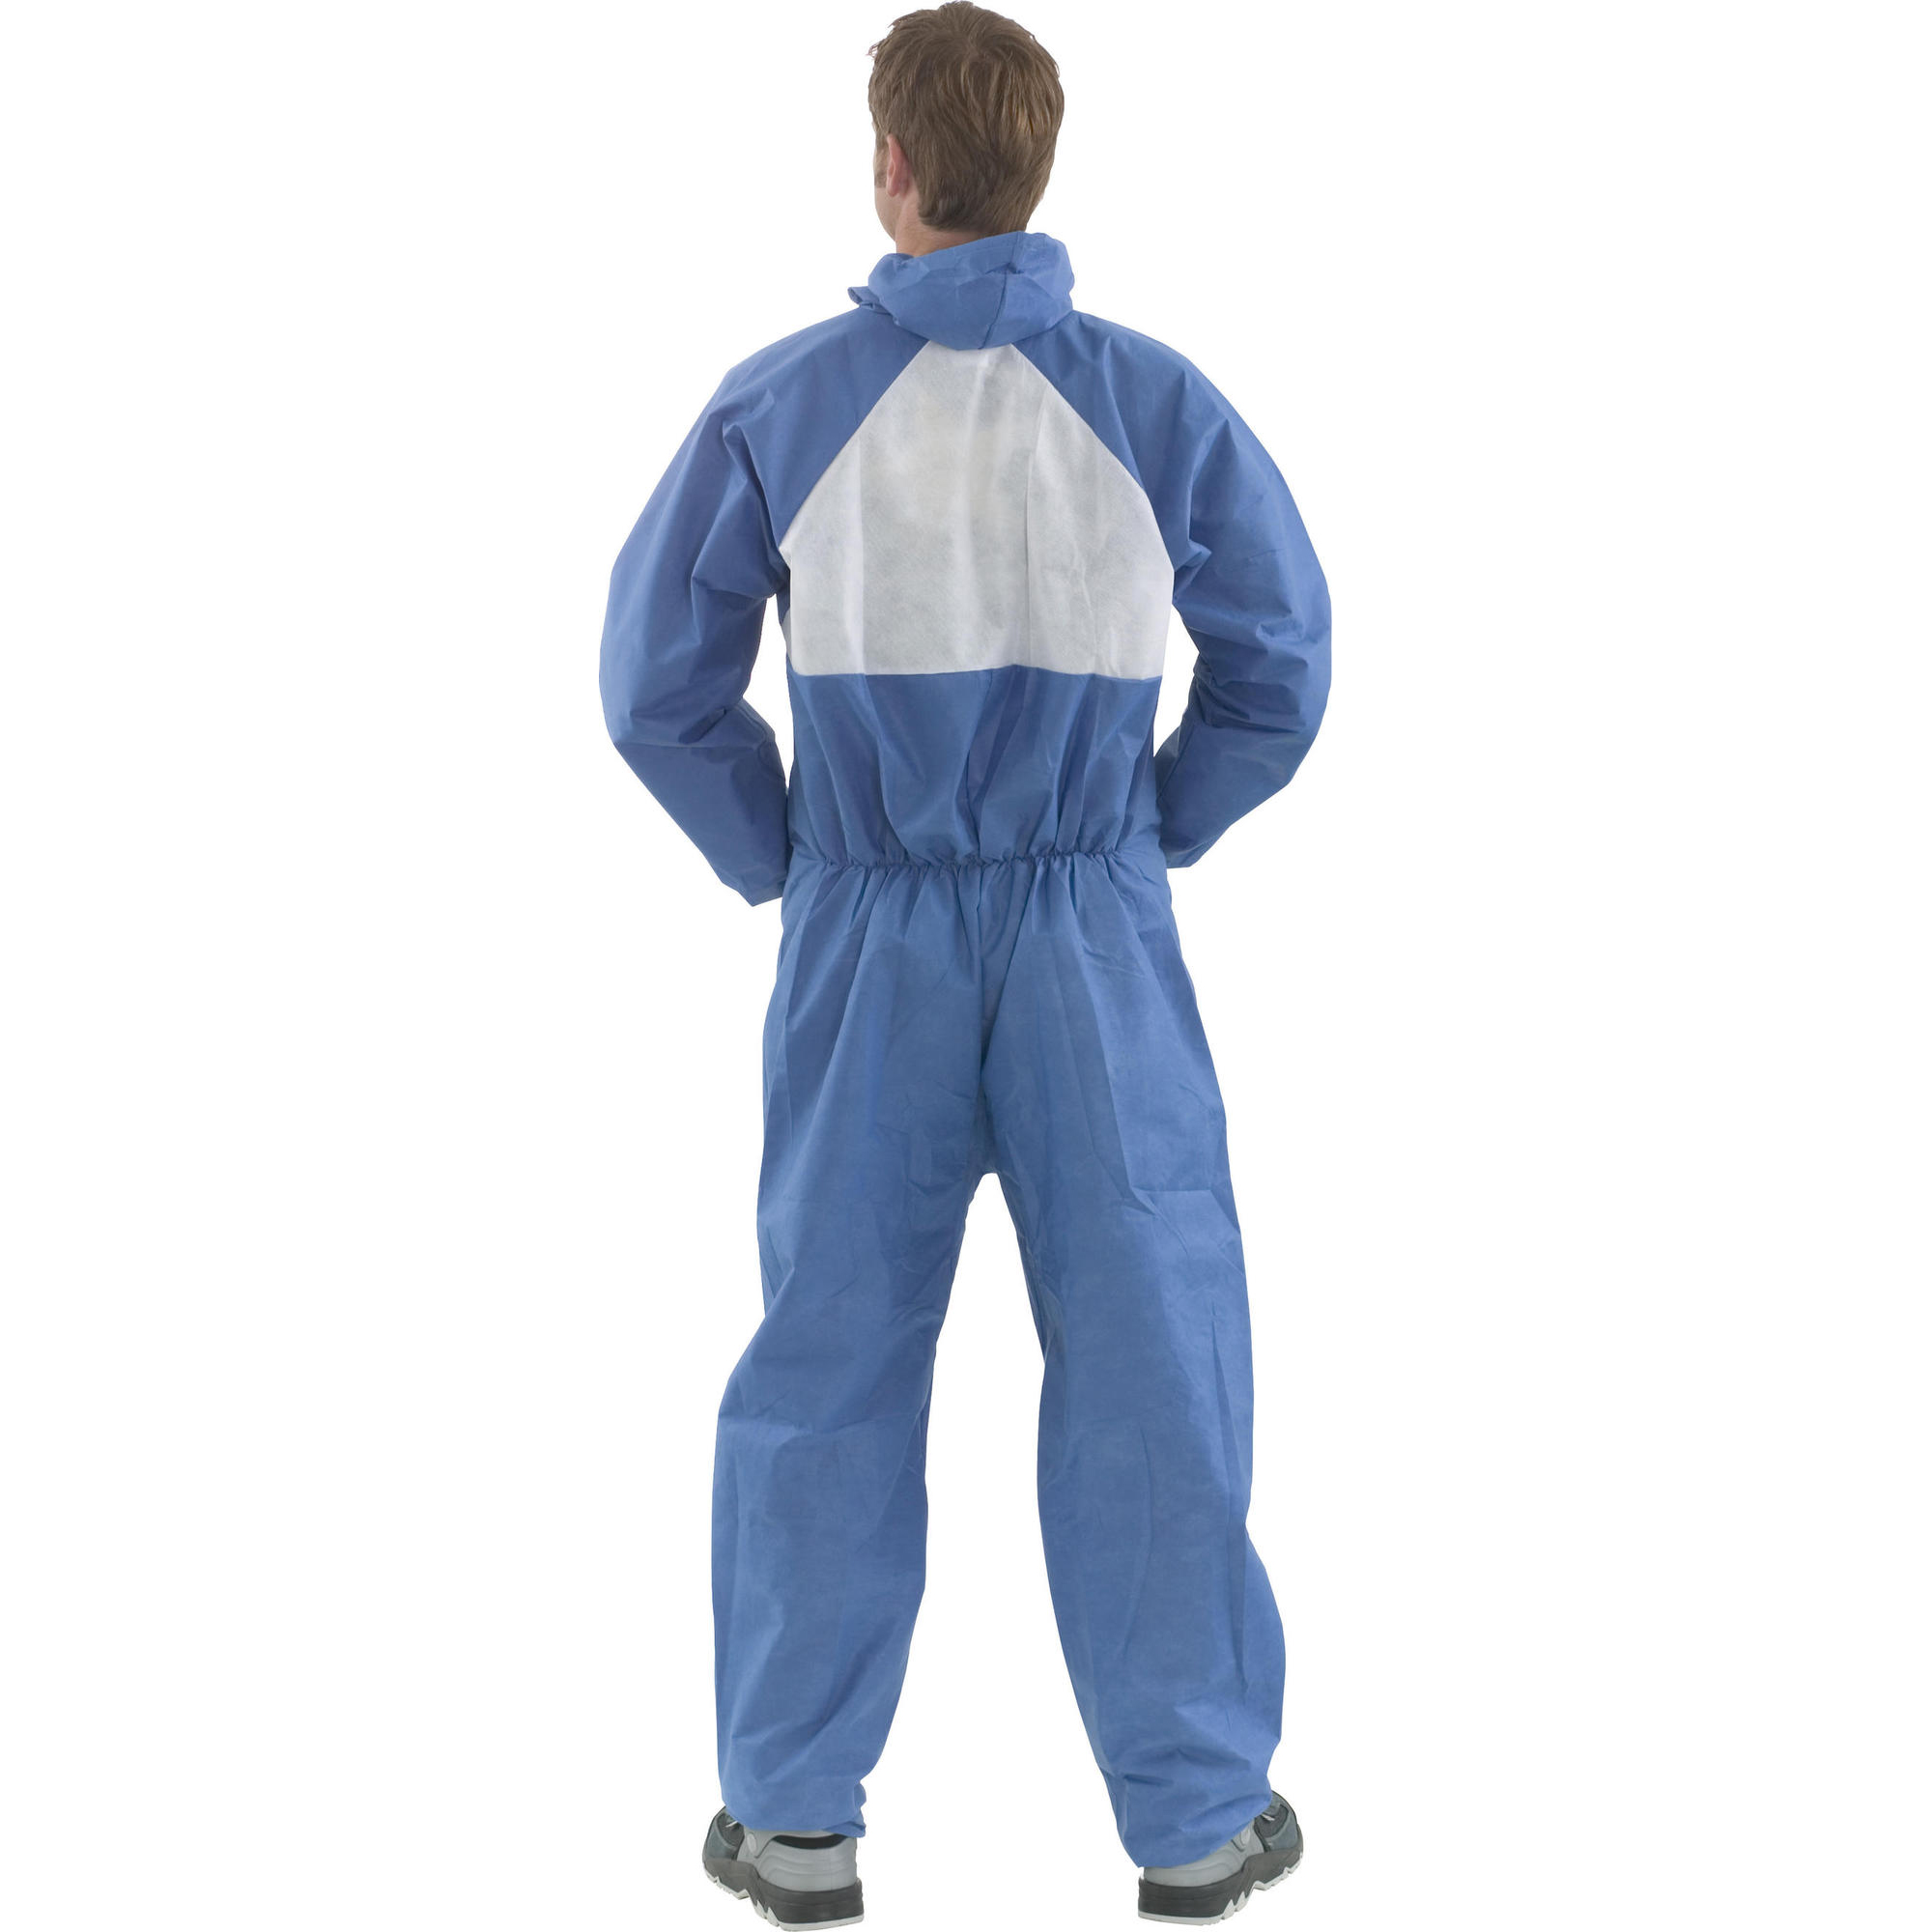 3M 4530 Fire Resistant Coveralls 2XL Blue/White Ref 4530XXL [Pack 20] *Up to 3 Day Leadtime*